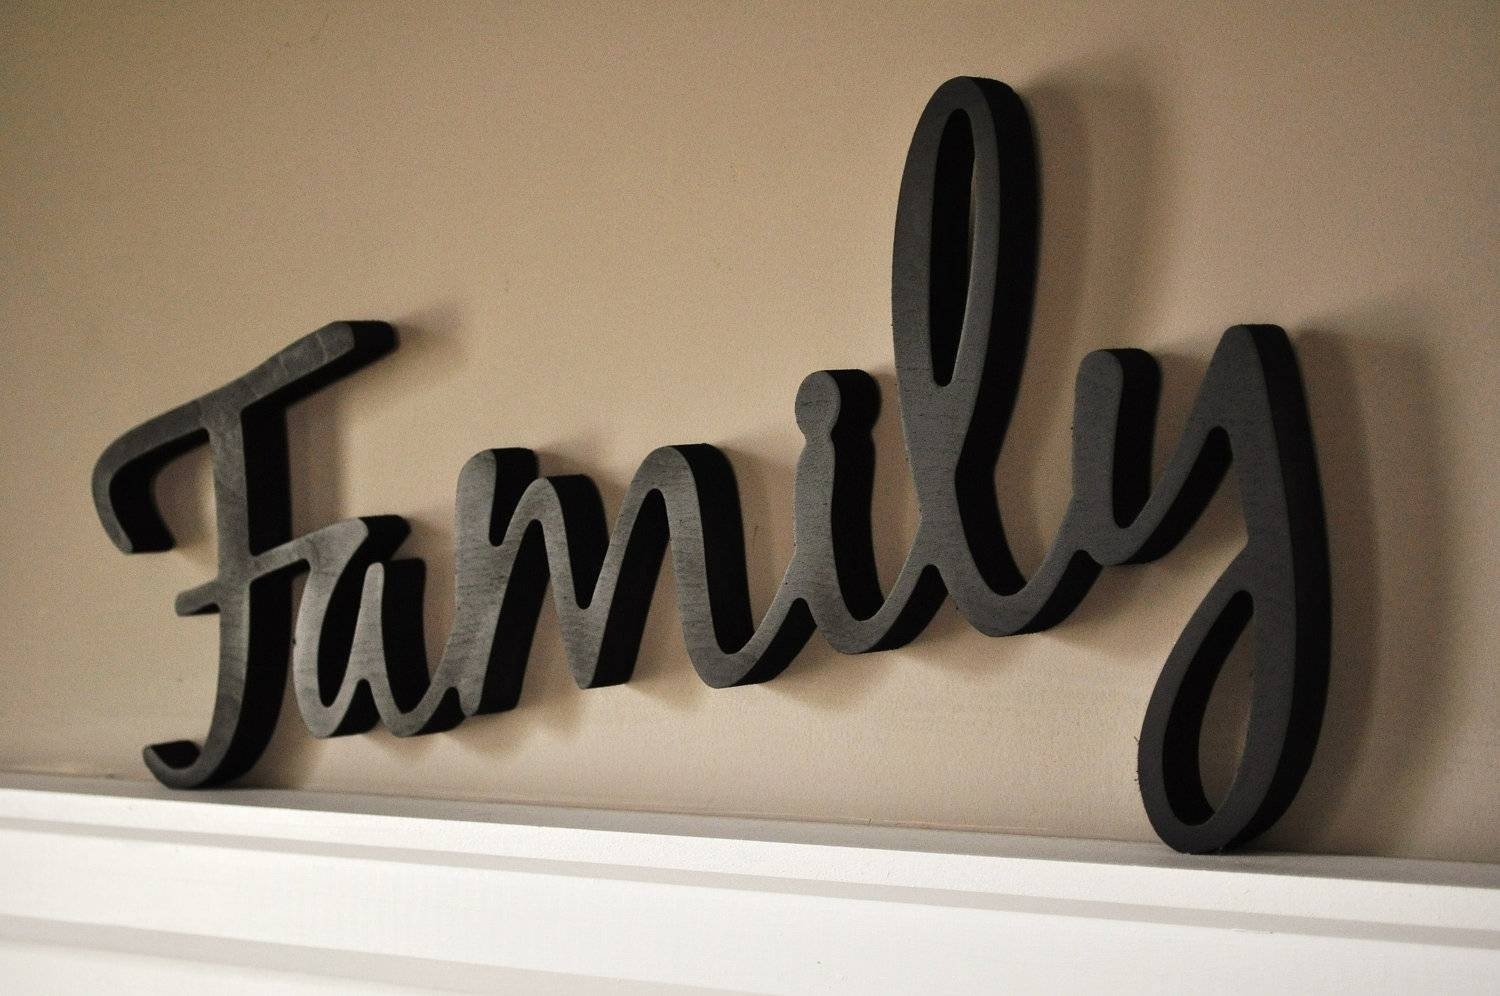 Word Art Wood 3d Cutout Familymrc Wood Products Throughout Current Wooden Words Wall Art (Gallery 1 of 30)